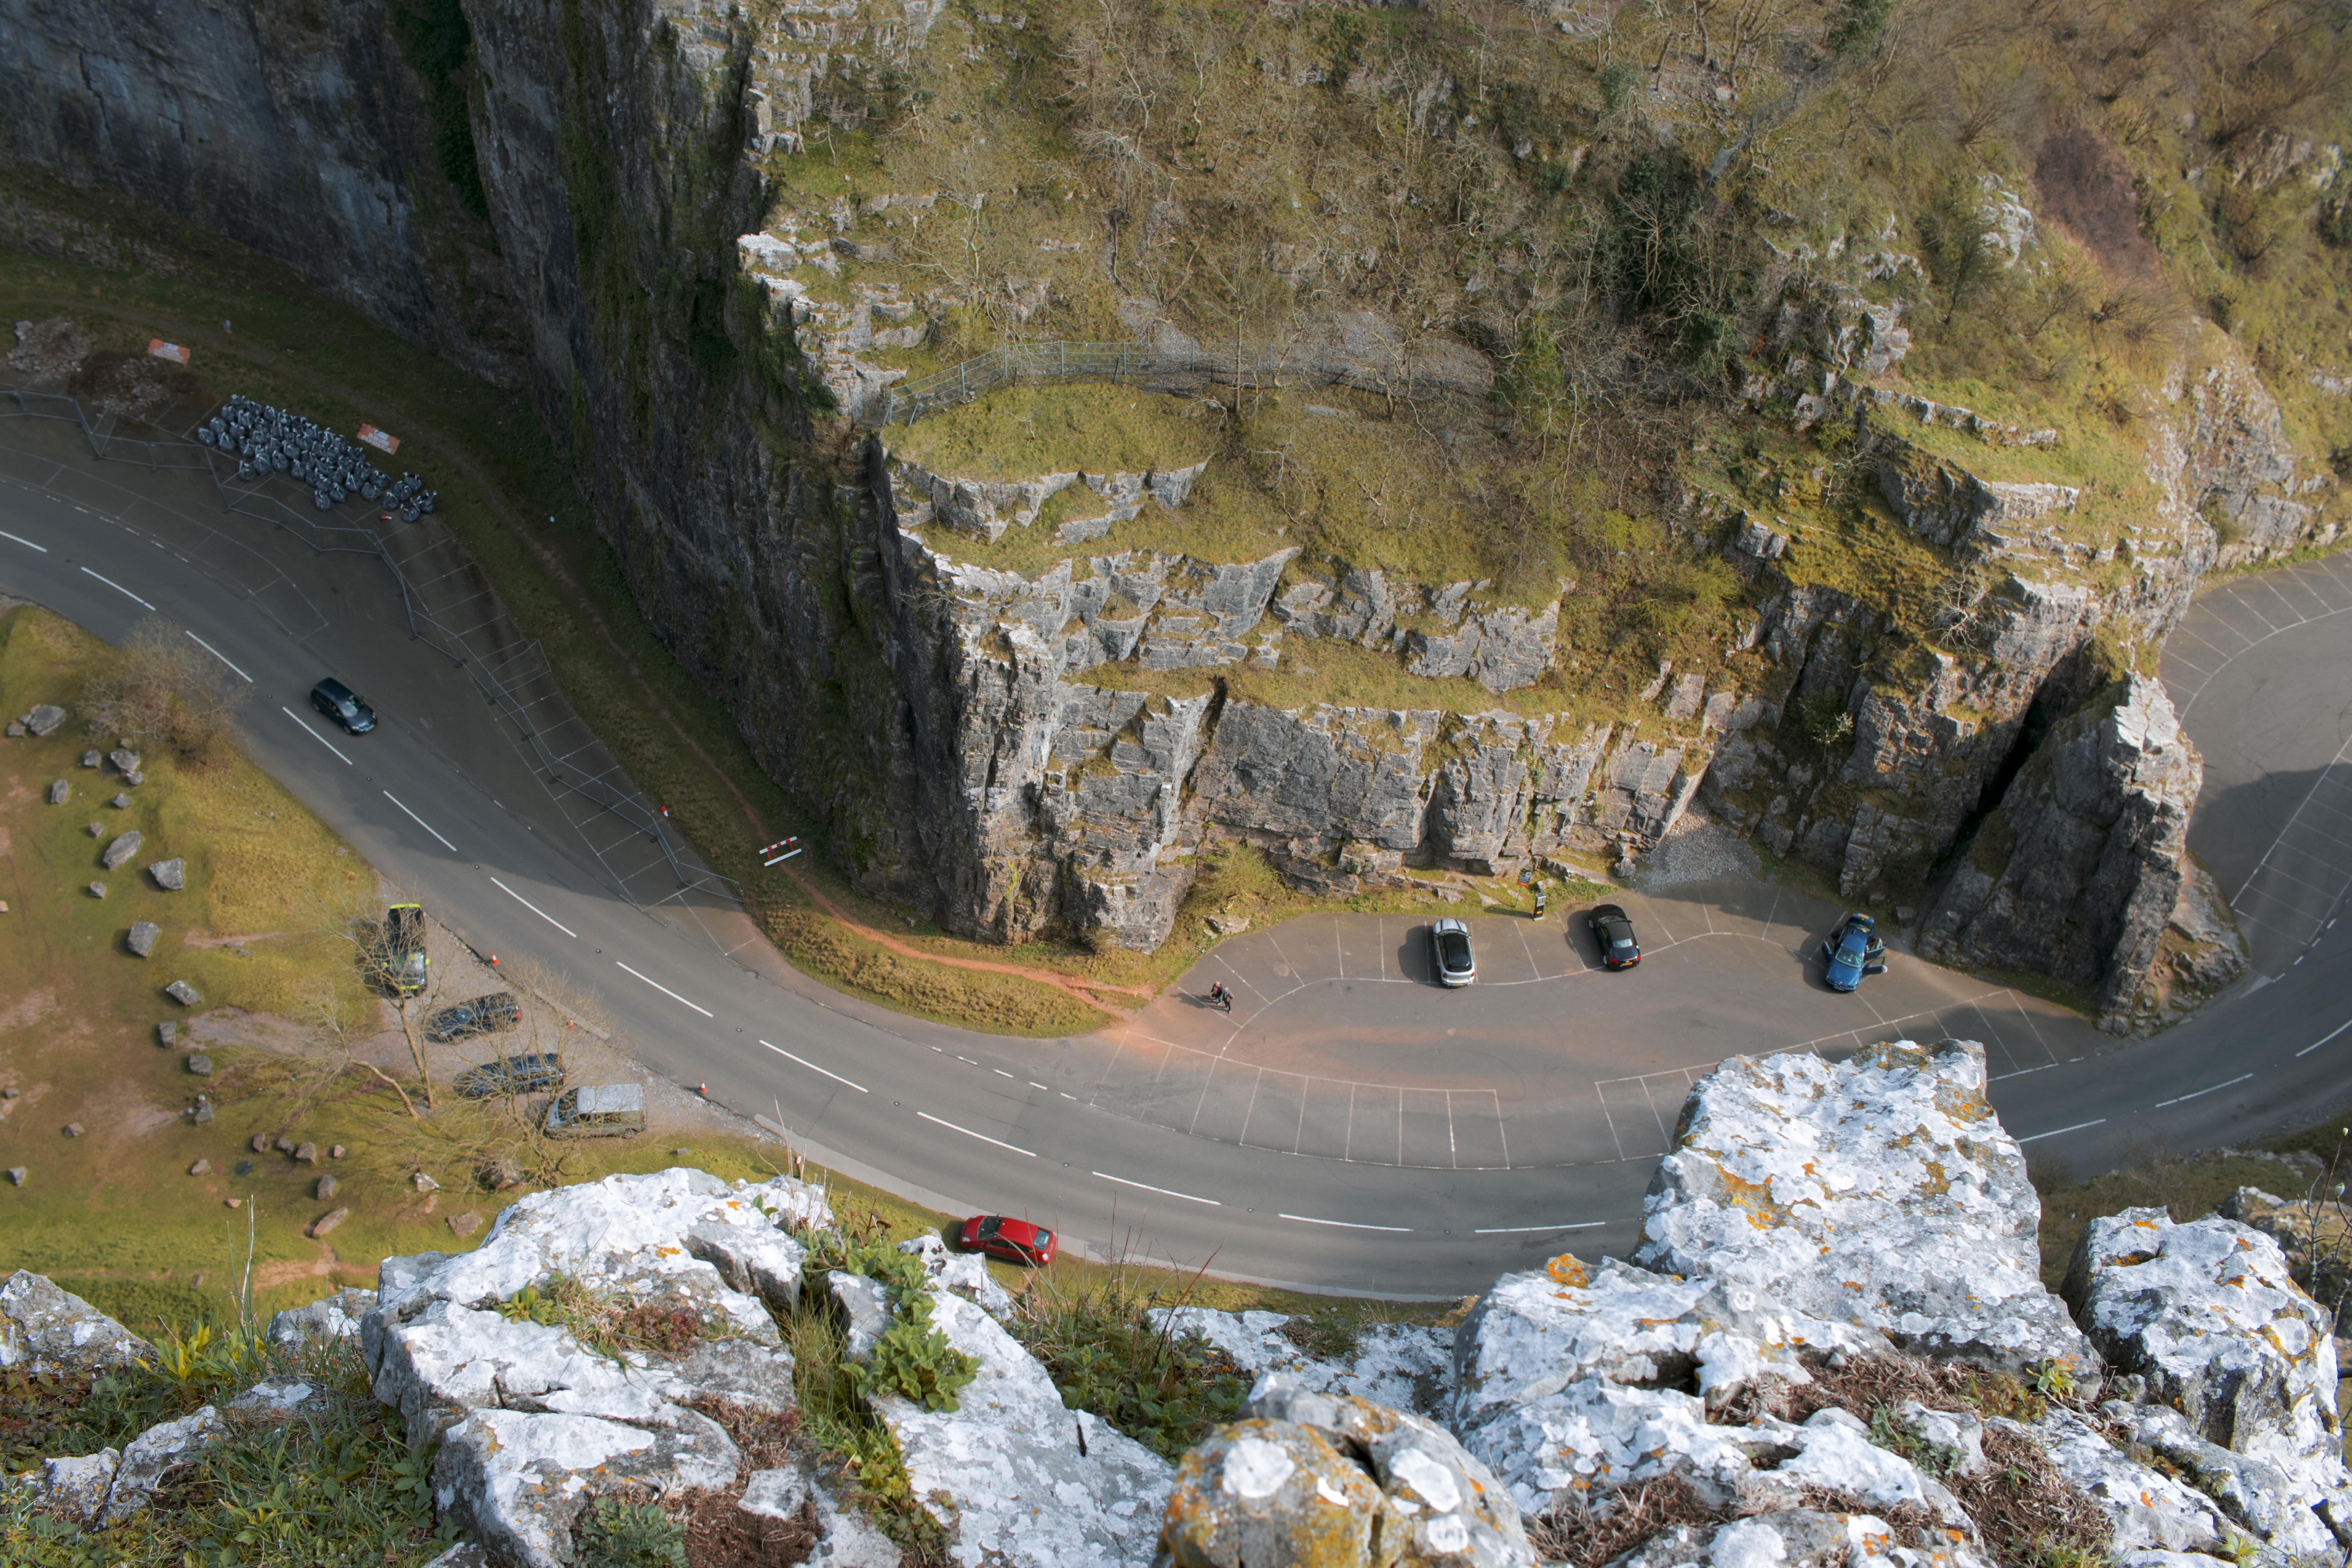 Airel Photography from Chedder Gorge